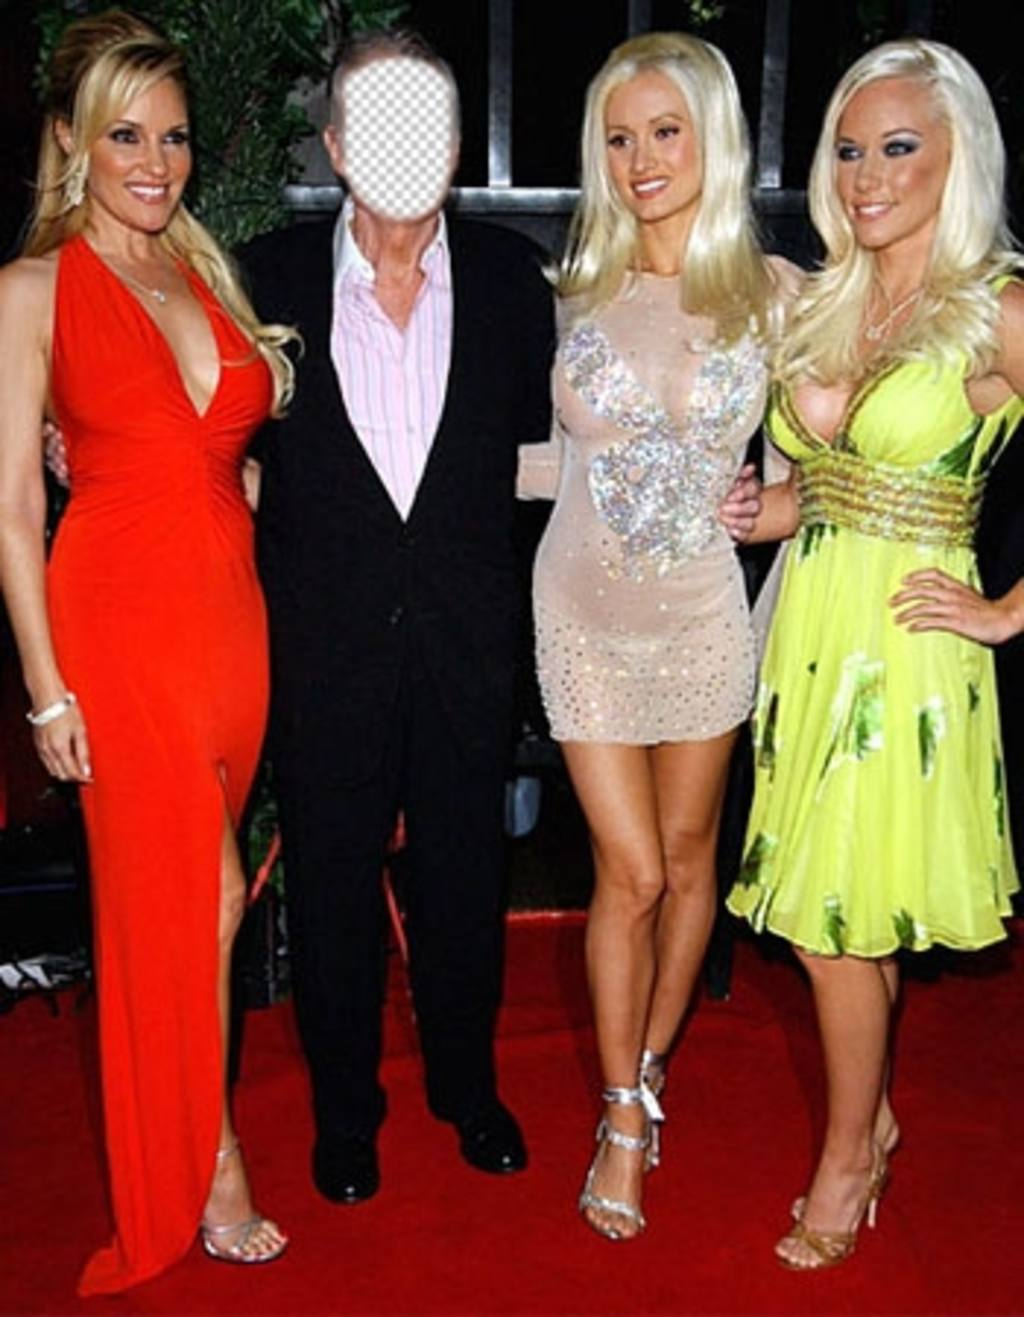 Editable photomontage of the owner of the famous magazine Playboy with girls